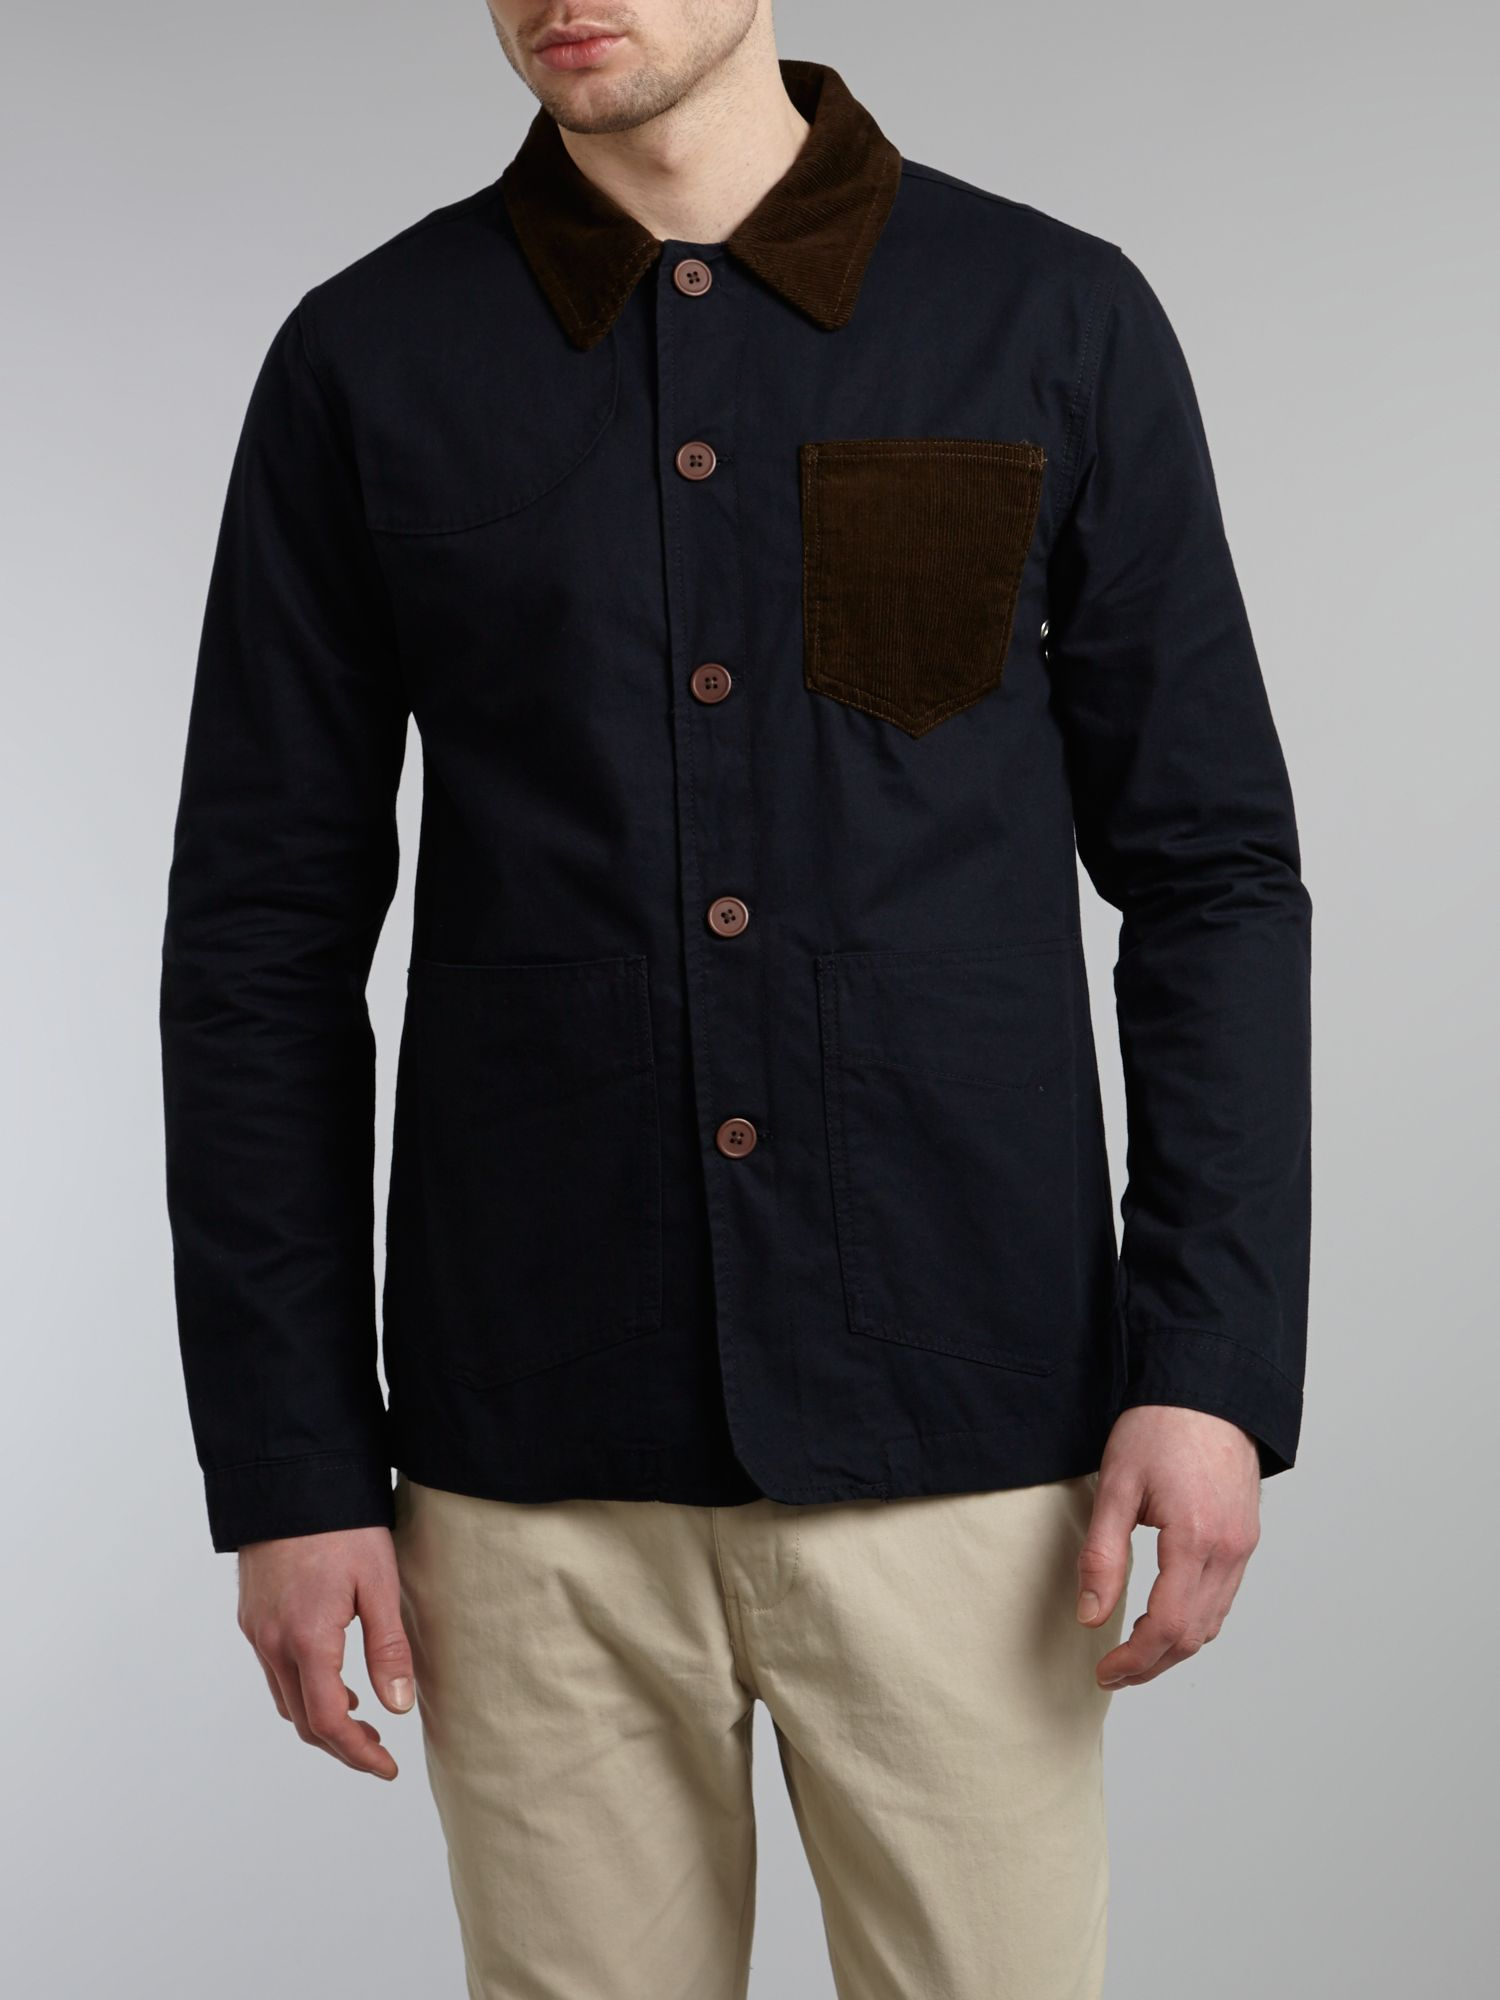 3 pocket worker jacket